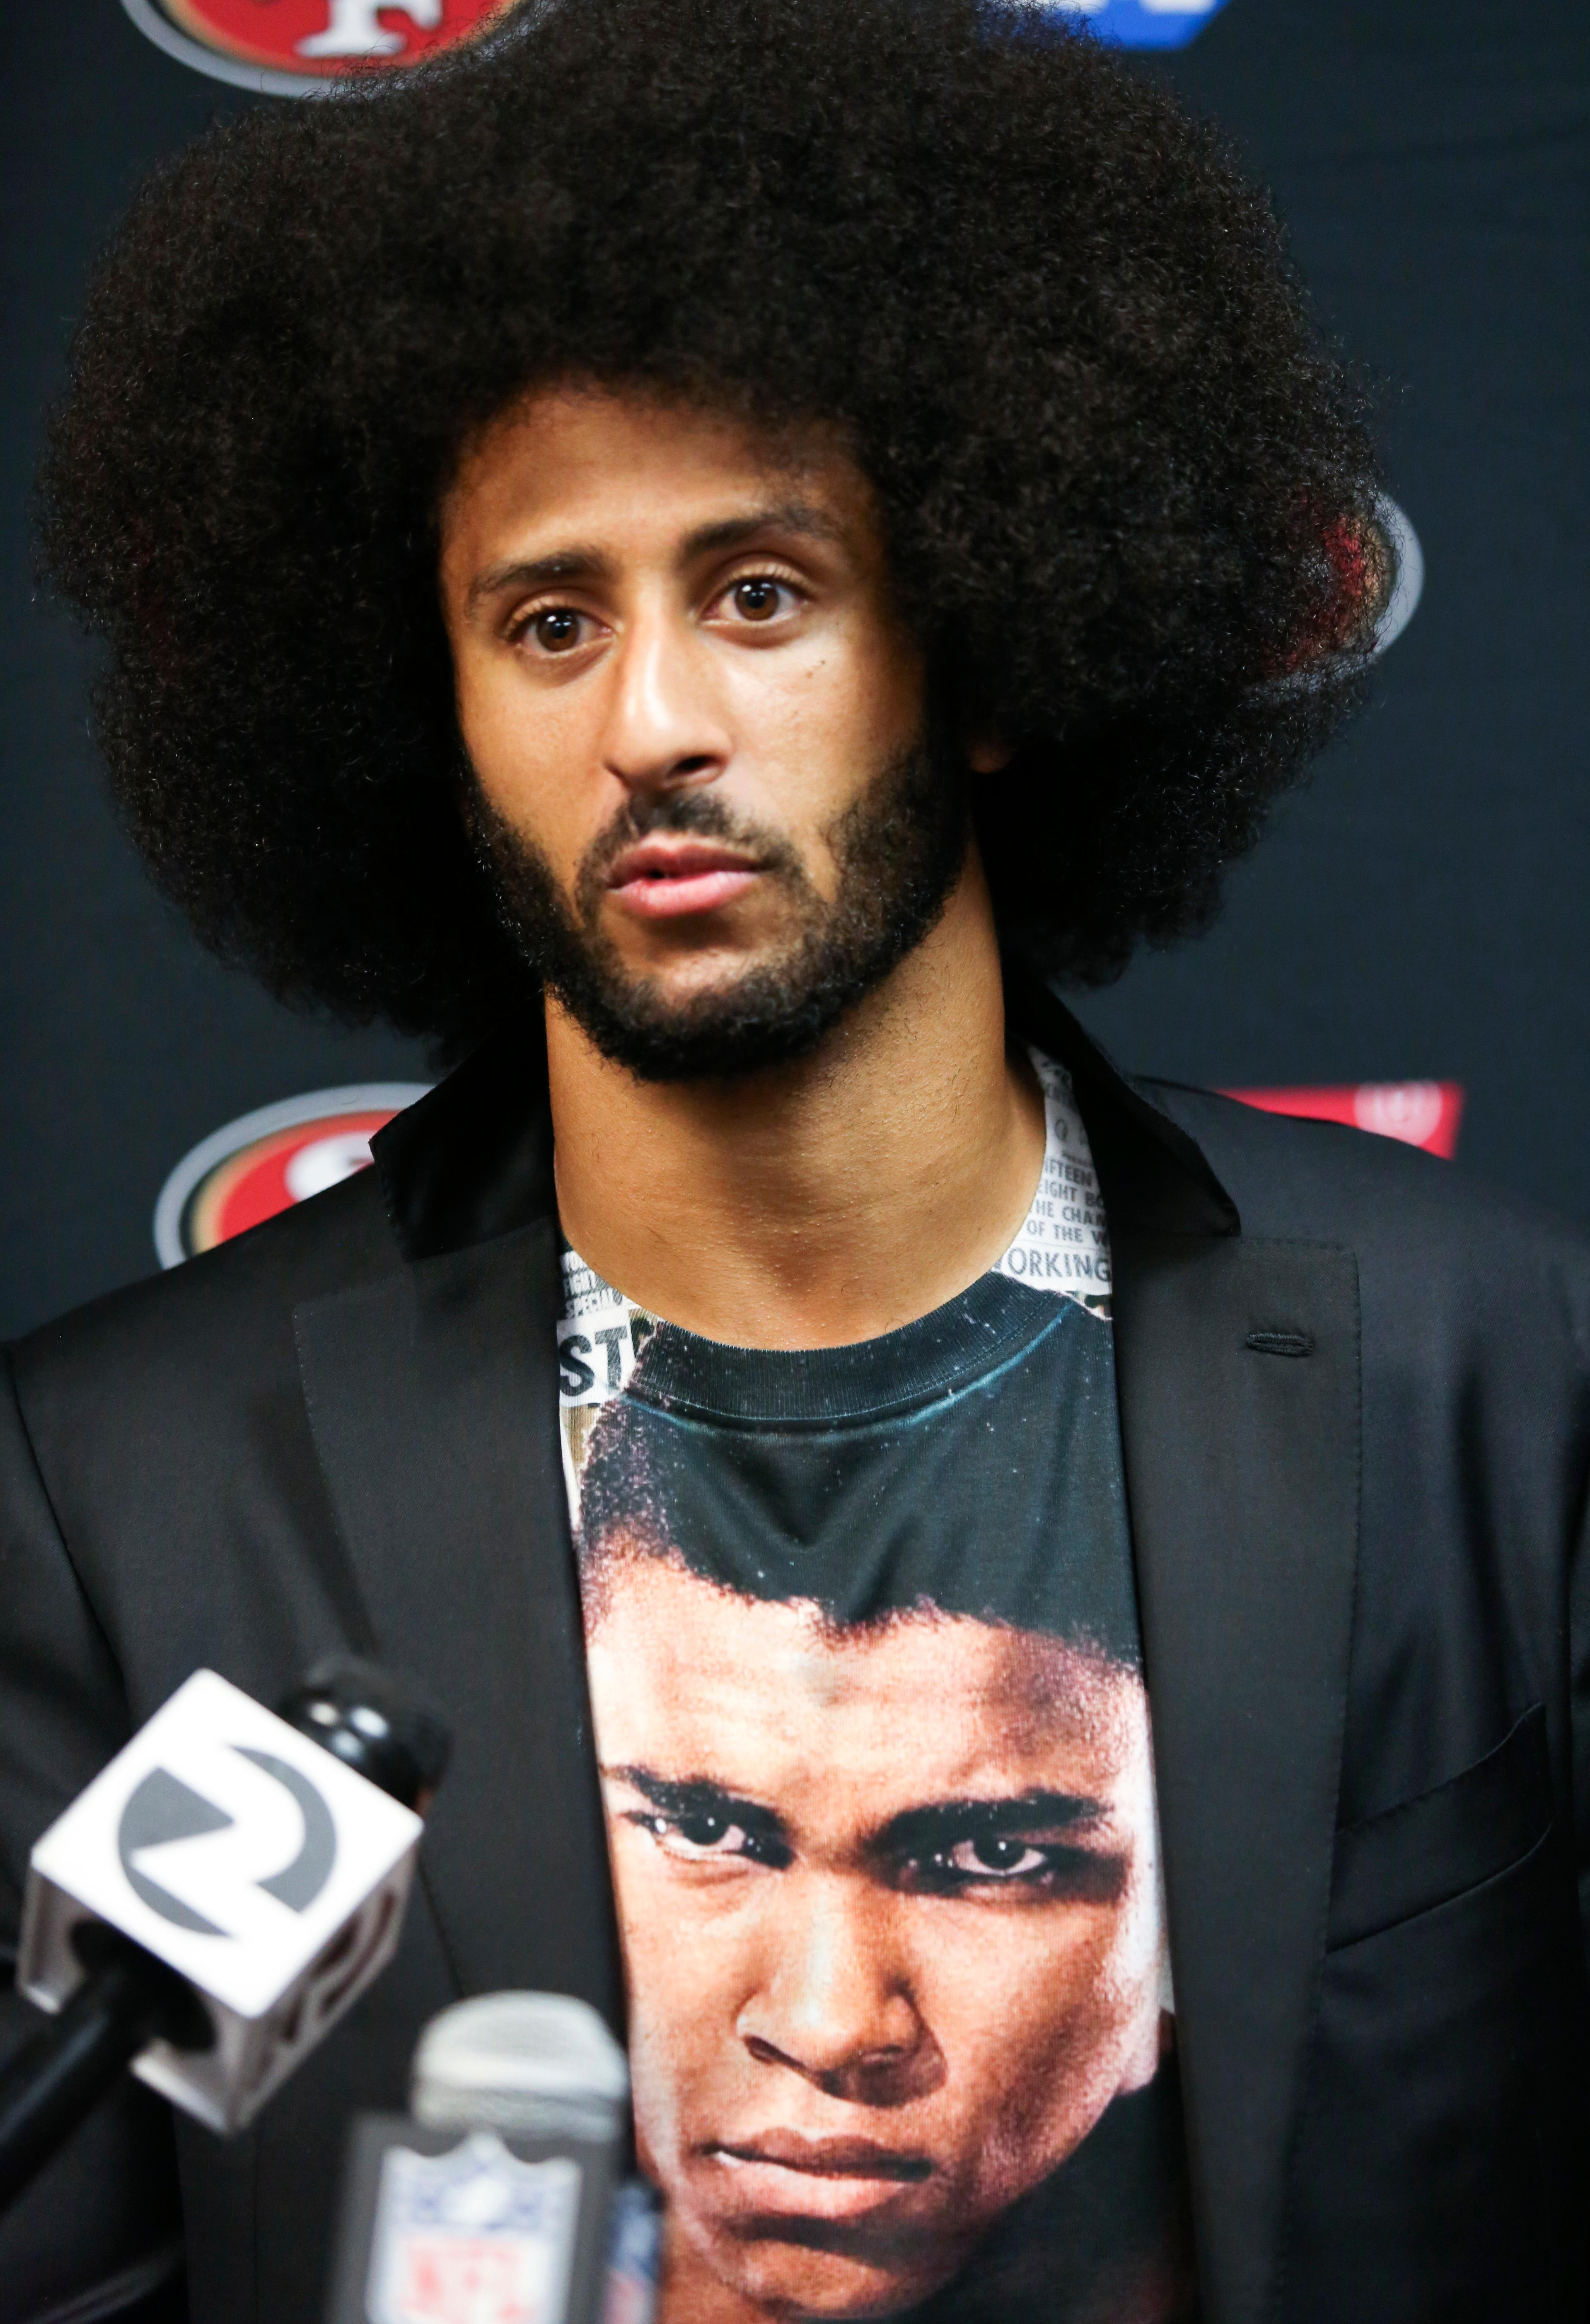 FILE - In this Oct. 16, 2016, file photo, San Francisco 49ers quarterback Colin Kaepernick talks with the media after an NFL football game against the Buffalo Bills in Orchard Park, N.Y. What started as a protest against police brutality has mushroomed a year later into a divisive debate over the future of Kaepernick who refused to stand for the national anthem and now faces what his fans see as blackballing for speaking out in a country roiled by racial strife. The once-rising star and Super Bowl quarterback has been unemployed since March, when he opted out of his contract and became a free agent who could sign with any team. (AP Photo/Jeffrey T. Barnes, File)